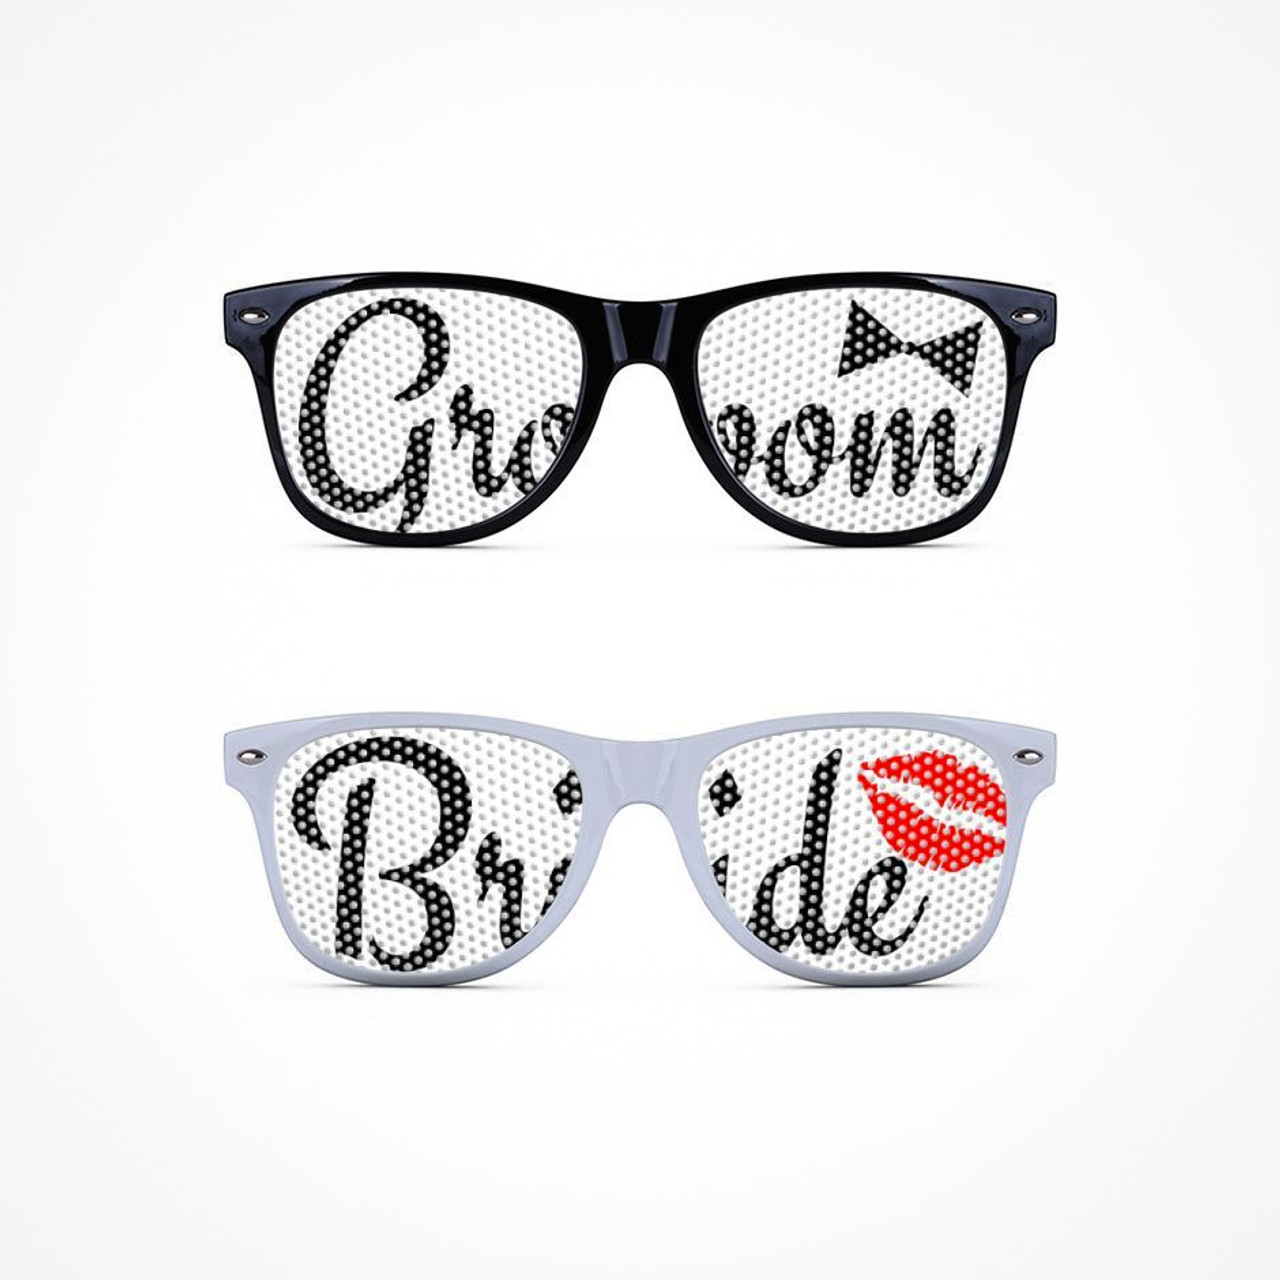 e0f4d34af6f Mesh sunglasses with printed words Bride and Groom